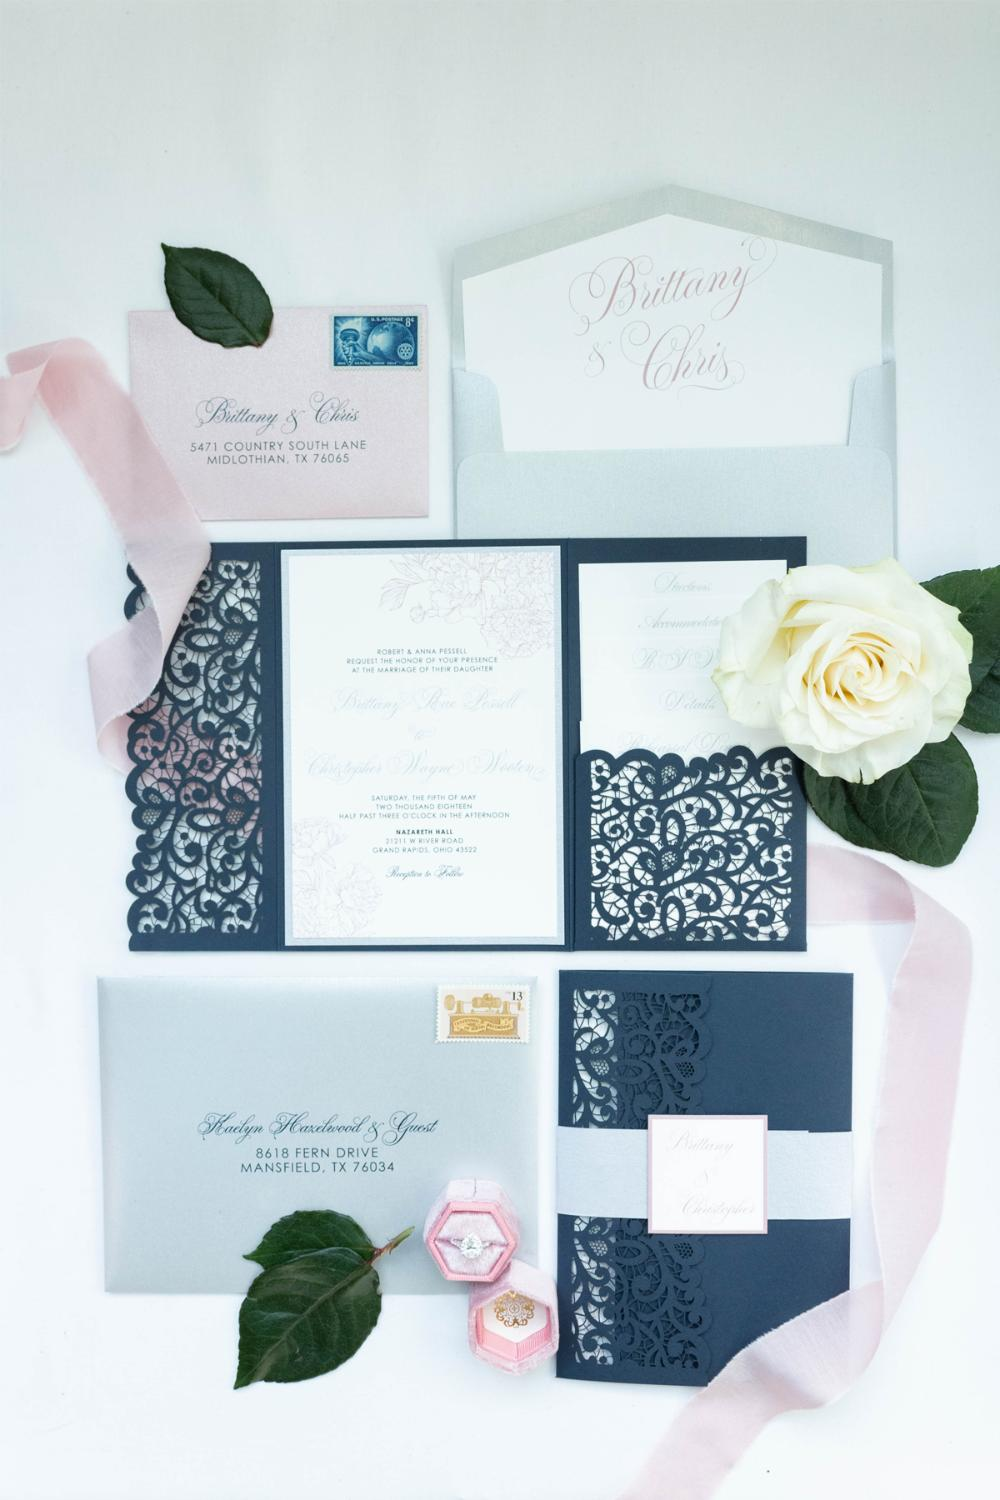 Elegant Formal Navy Blue, Silver Glitter and Blush Lace Laser Cut Pocket Wedding Invitation, Belly Band & Inserts — Different Colors Options